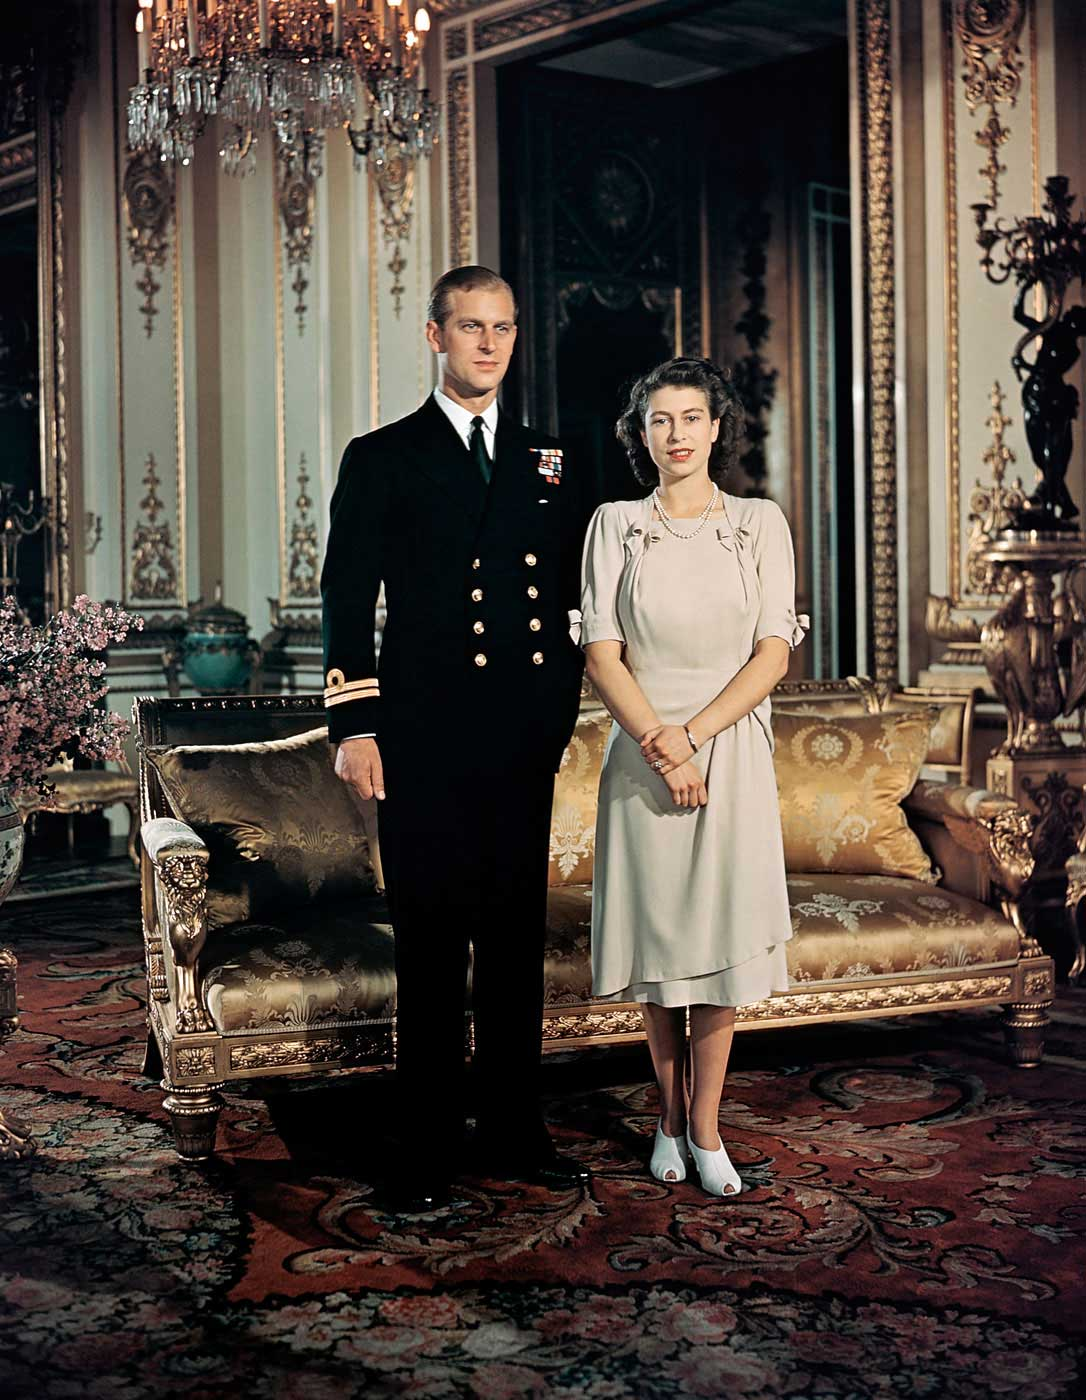 Princess Elizabeth stands with her fiancé, Lieutenant Philip Mountbatten, Prince of Greece and Denmark, at Buckingham Palace on Aug. 19, 1947. Though the pair had known each other for years and were very much in love, their engagement sparked some controversy. To appease critics, foreign-born Philip renounced his Greek and Danish titles and converted to Anglicanism.